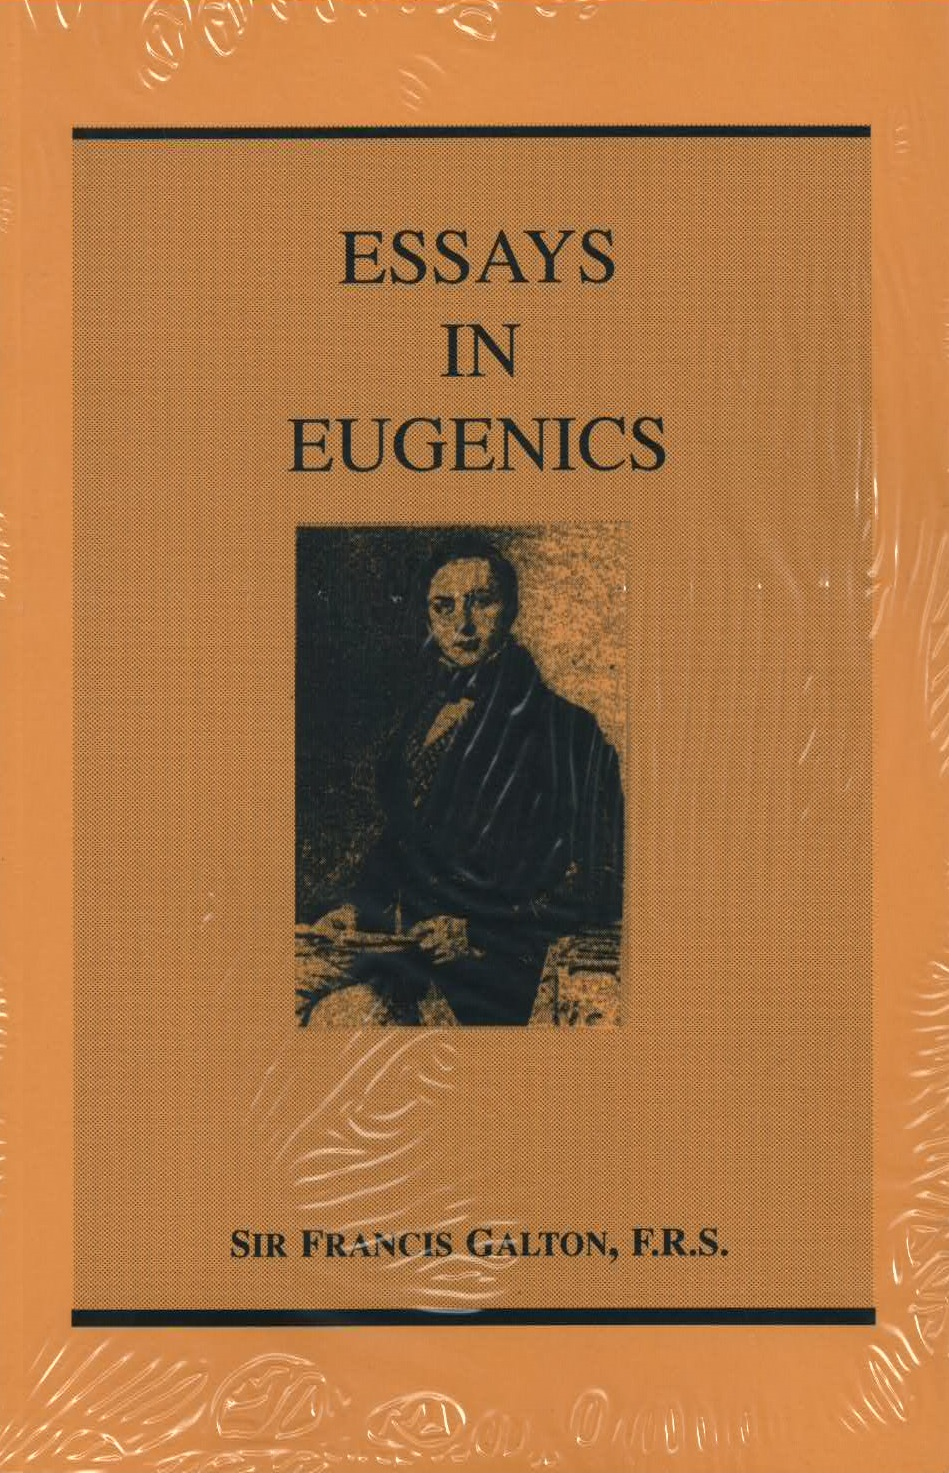 essays on eugenics francis galton Sir francis galton first coined the term eugenics in 1883 put simply, eugenics means well-born initially galton focused on positive eugenics, encouraging healthy, capable people of above-average intelligence to bear more children, with the idea of building an improved human race.